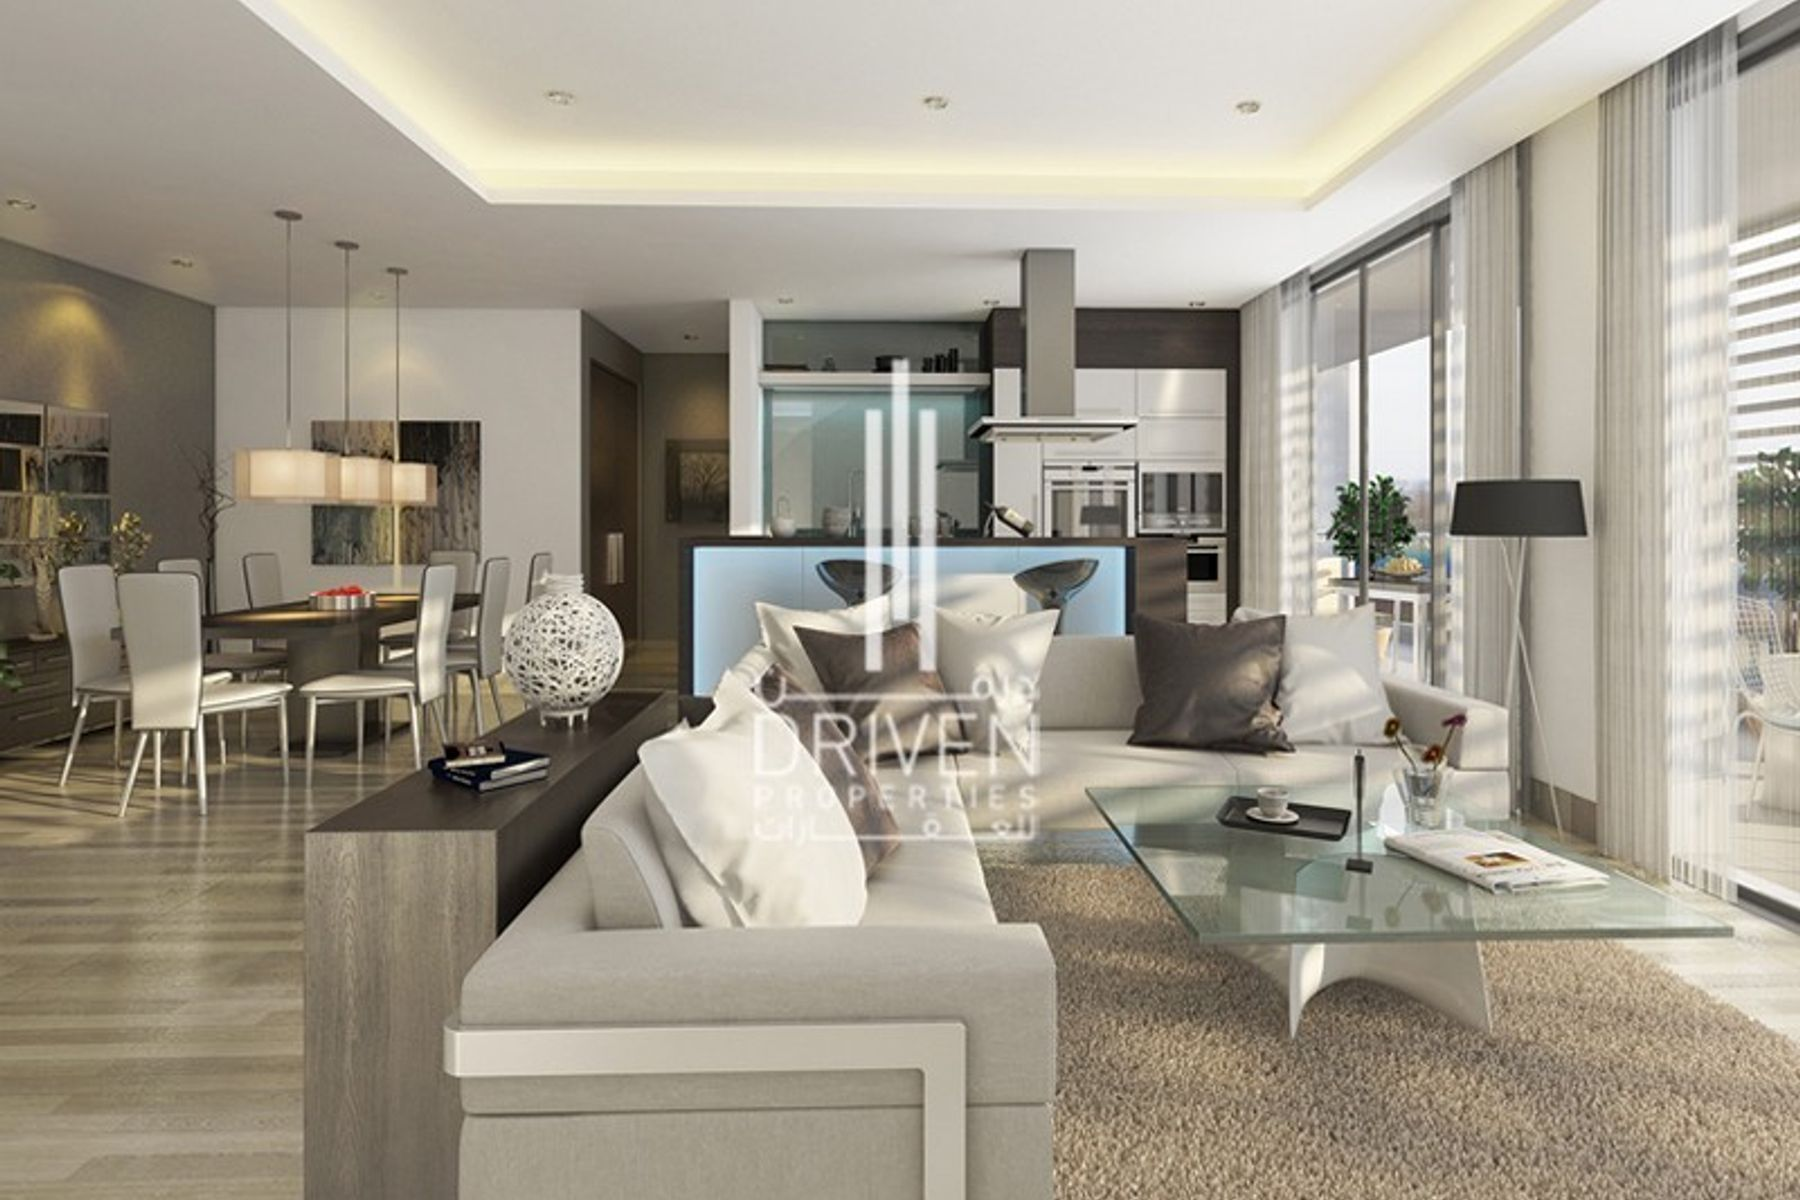 Apartment for Sale in Sobha Creek Vistas - Mohammed Bin Rashid City